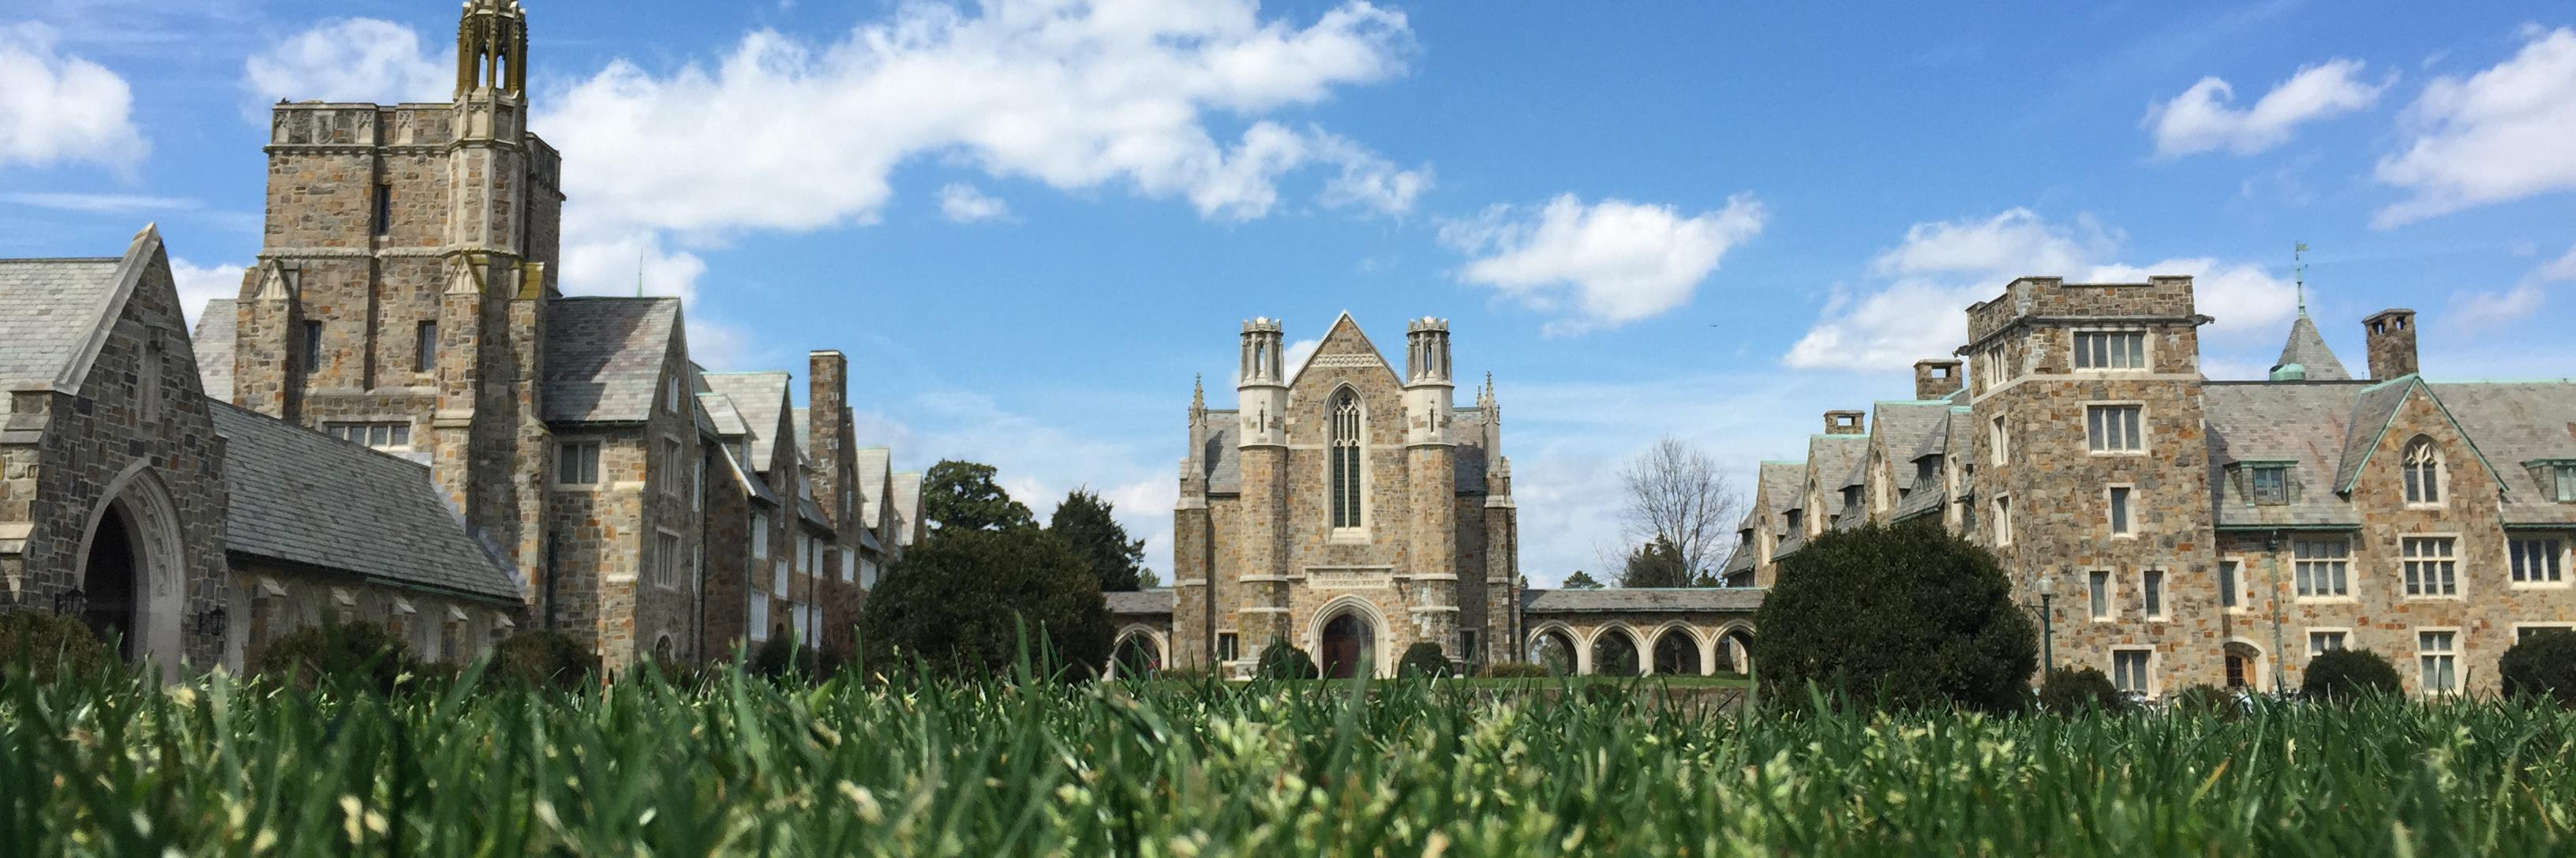 Berry College's official Twitter account